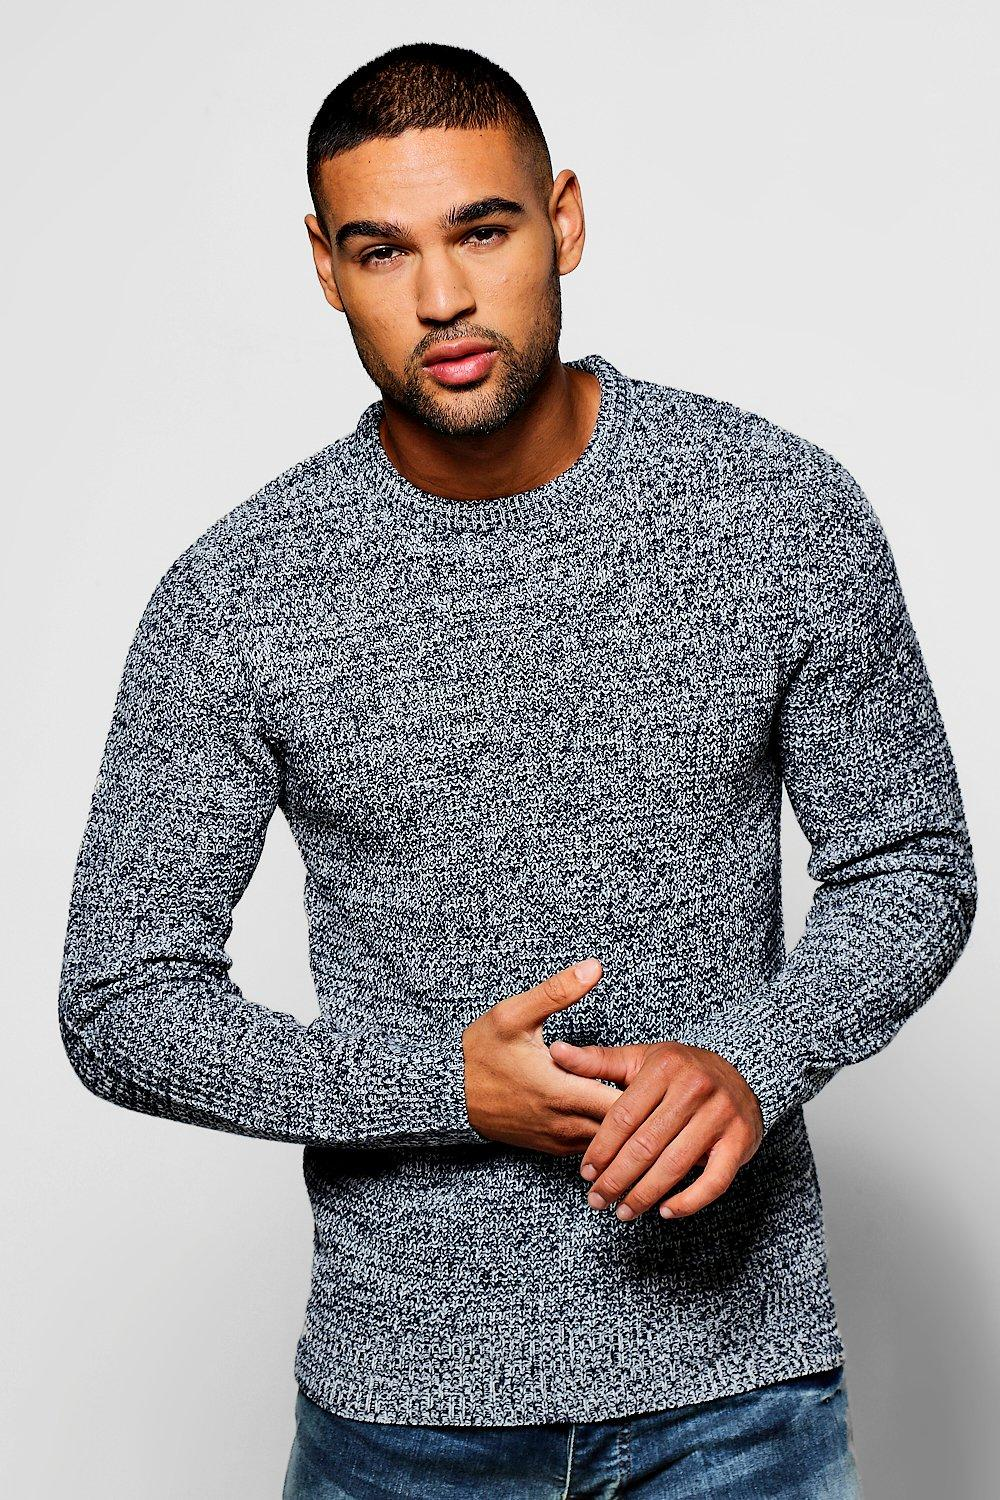 boohooMAN navy Crew Neck Ribbed Jumper with Twisted Knit